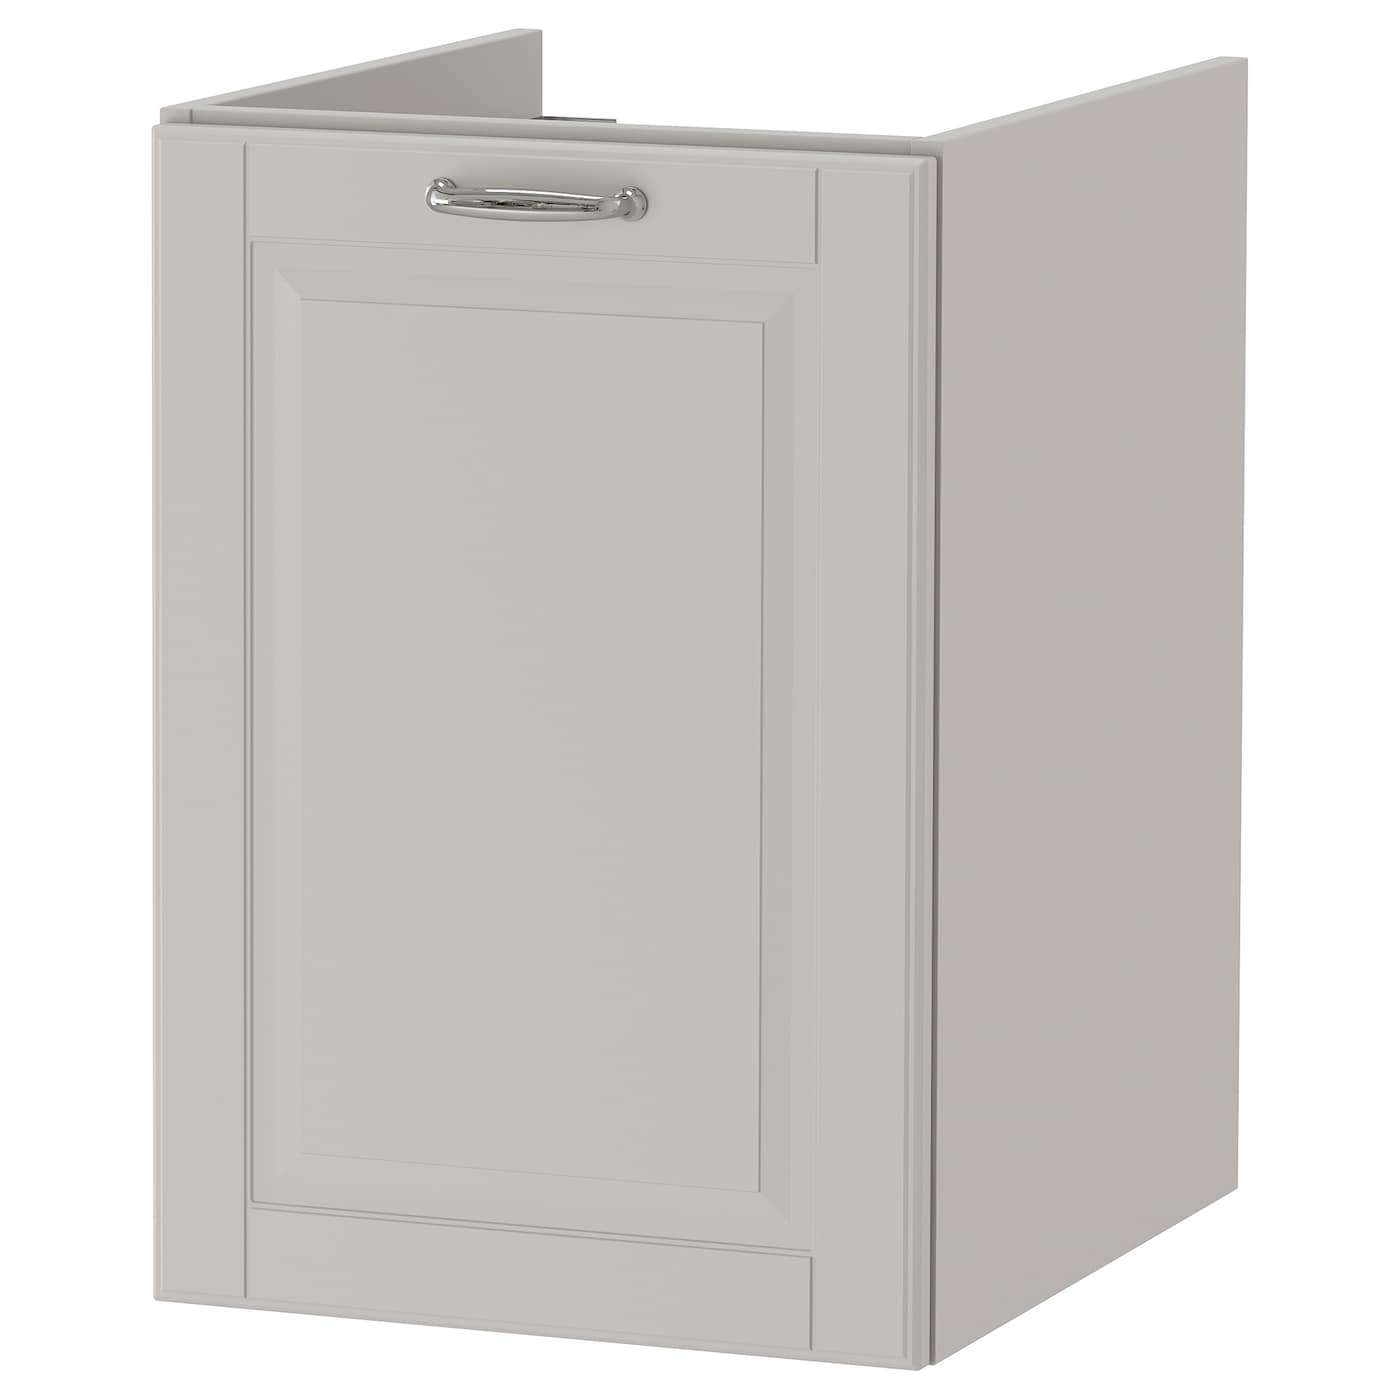 godmorgon armoire ling re kasj n gris clair 40x47x58 cm ikea. Black Bedroom Furniture Sets. Home Design Ideas